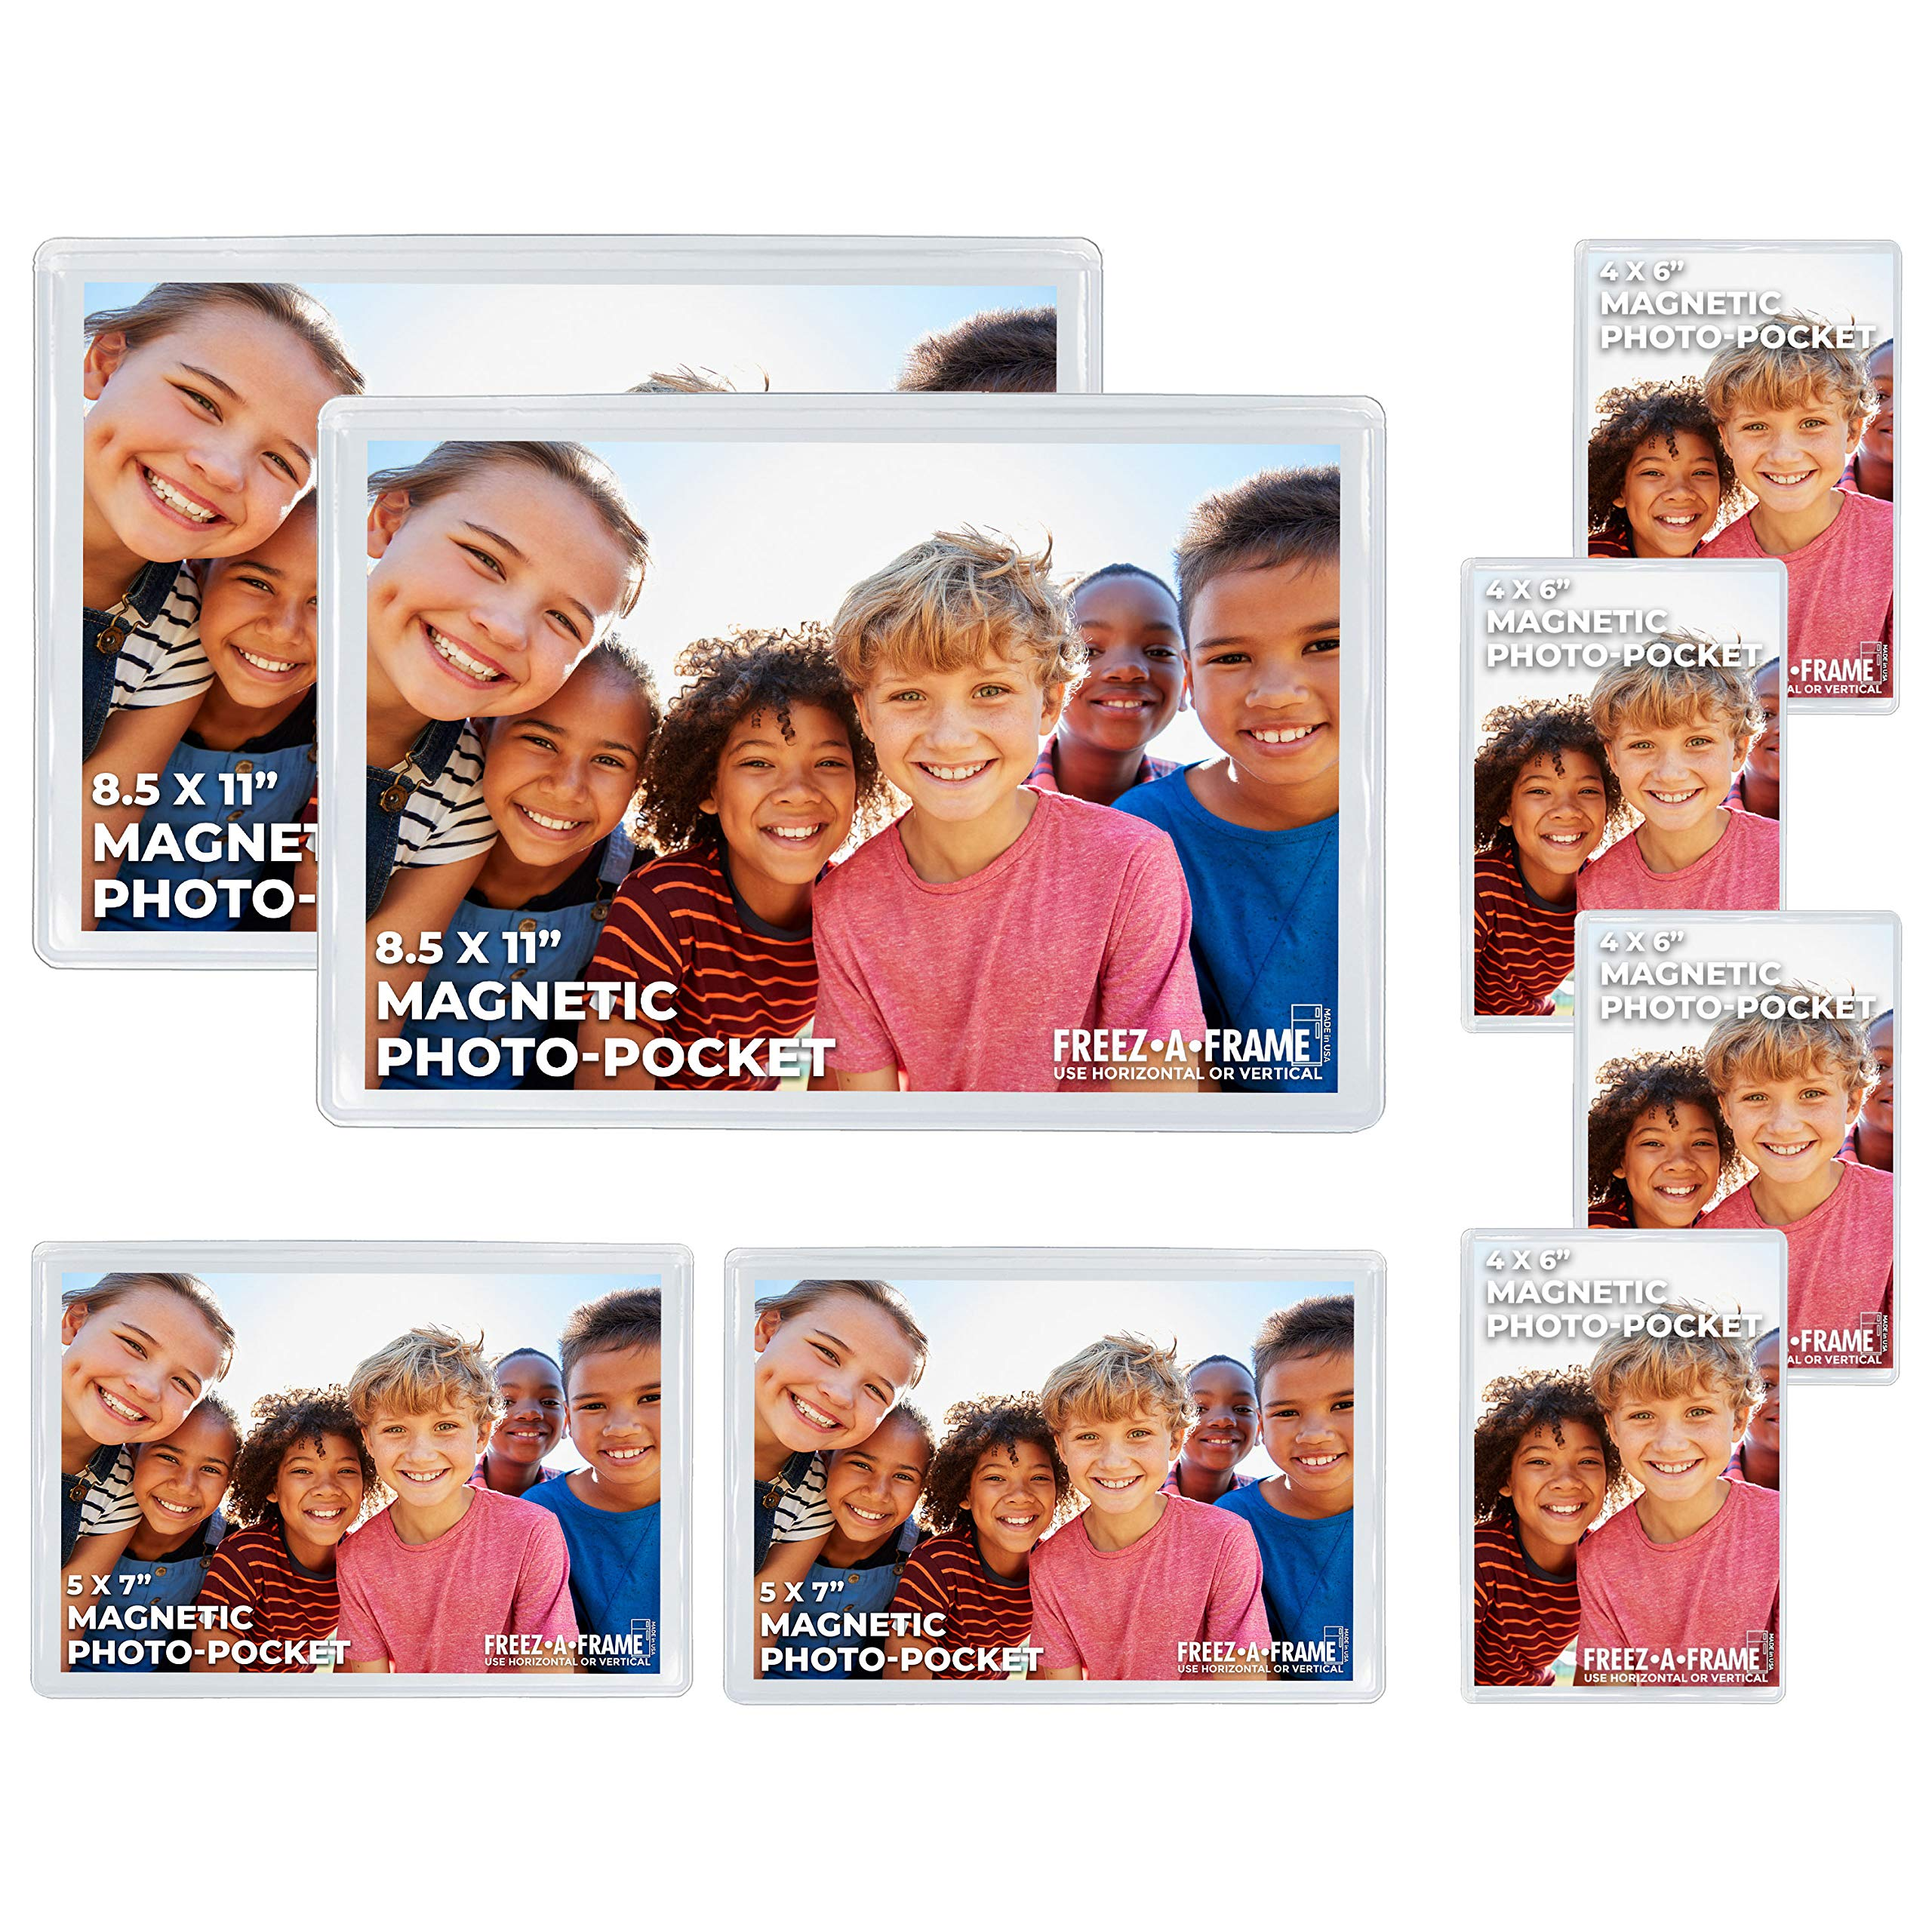 Freez A Frame Clear Magnetic Picture Frames For Refrigerator School Locker, or any Magnetic Surface 8 Pack (2) 8.5 x 11 (2) 5 x 7 (4) 4 x 6 Photo Pockets by Freez A Frame